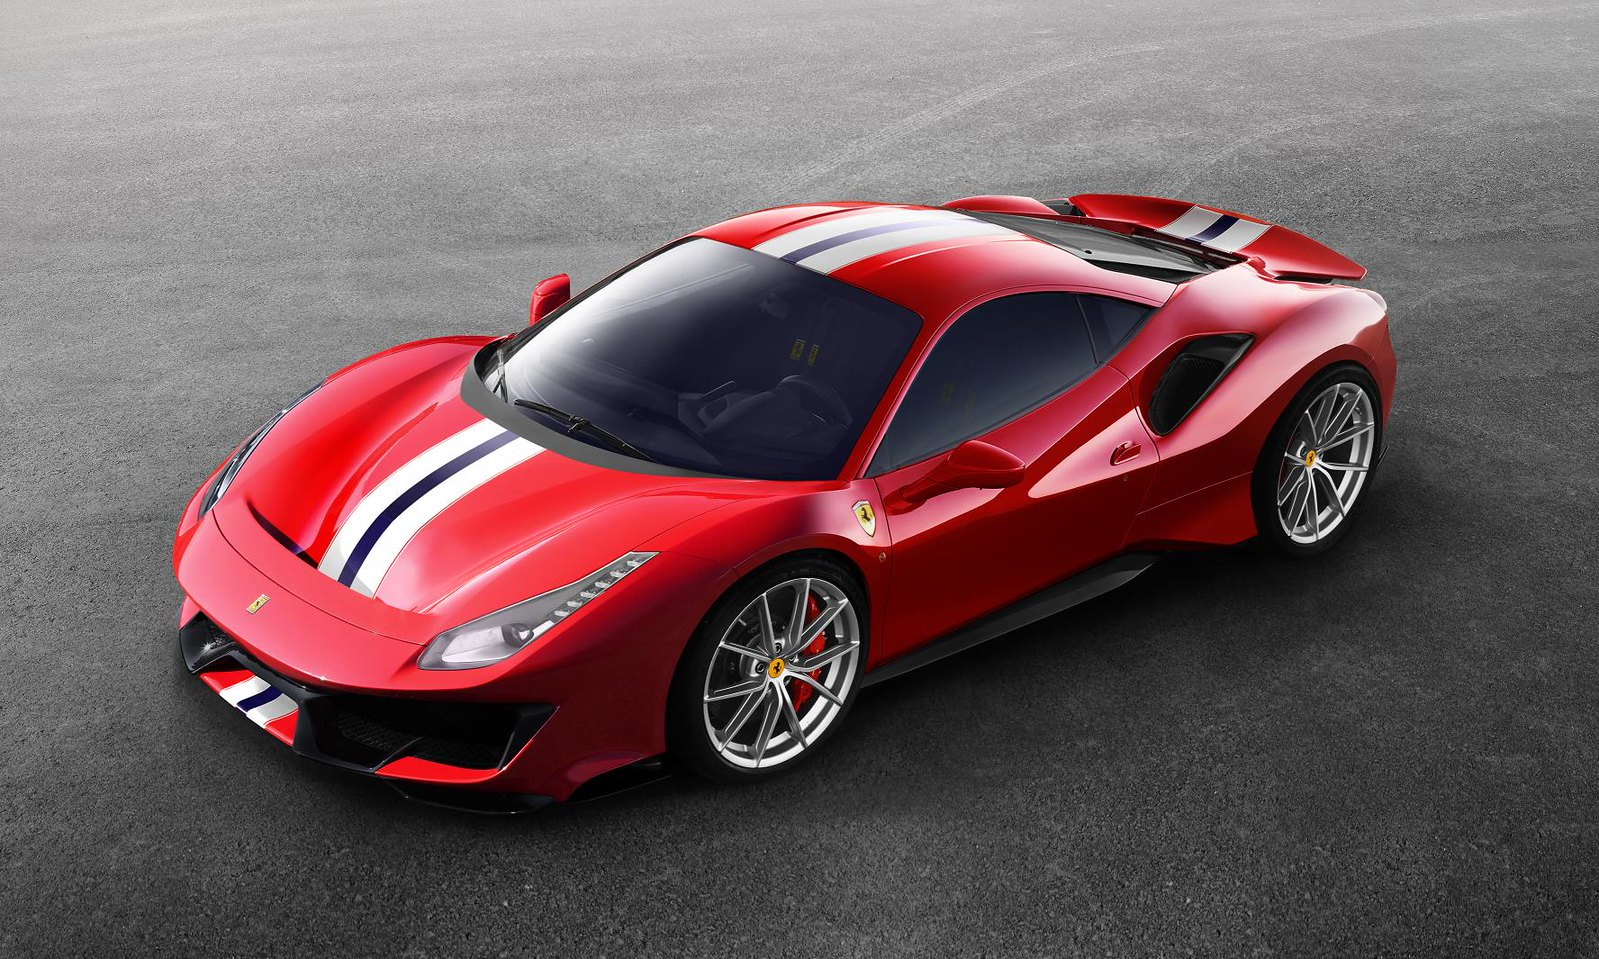 Ferrari 488 Pista: First images released ahead of unveiling at Geneva Motor Show